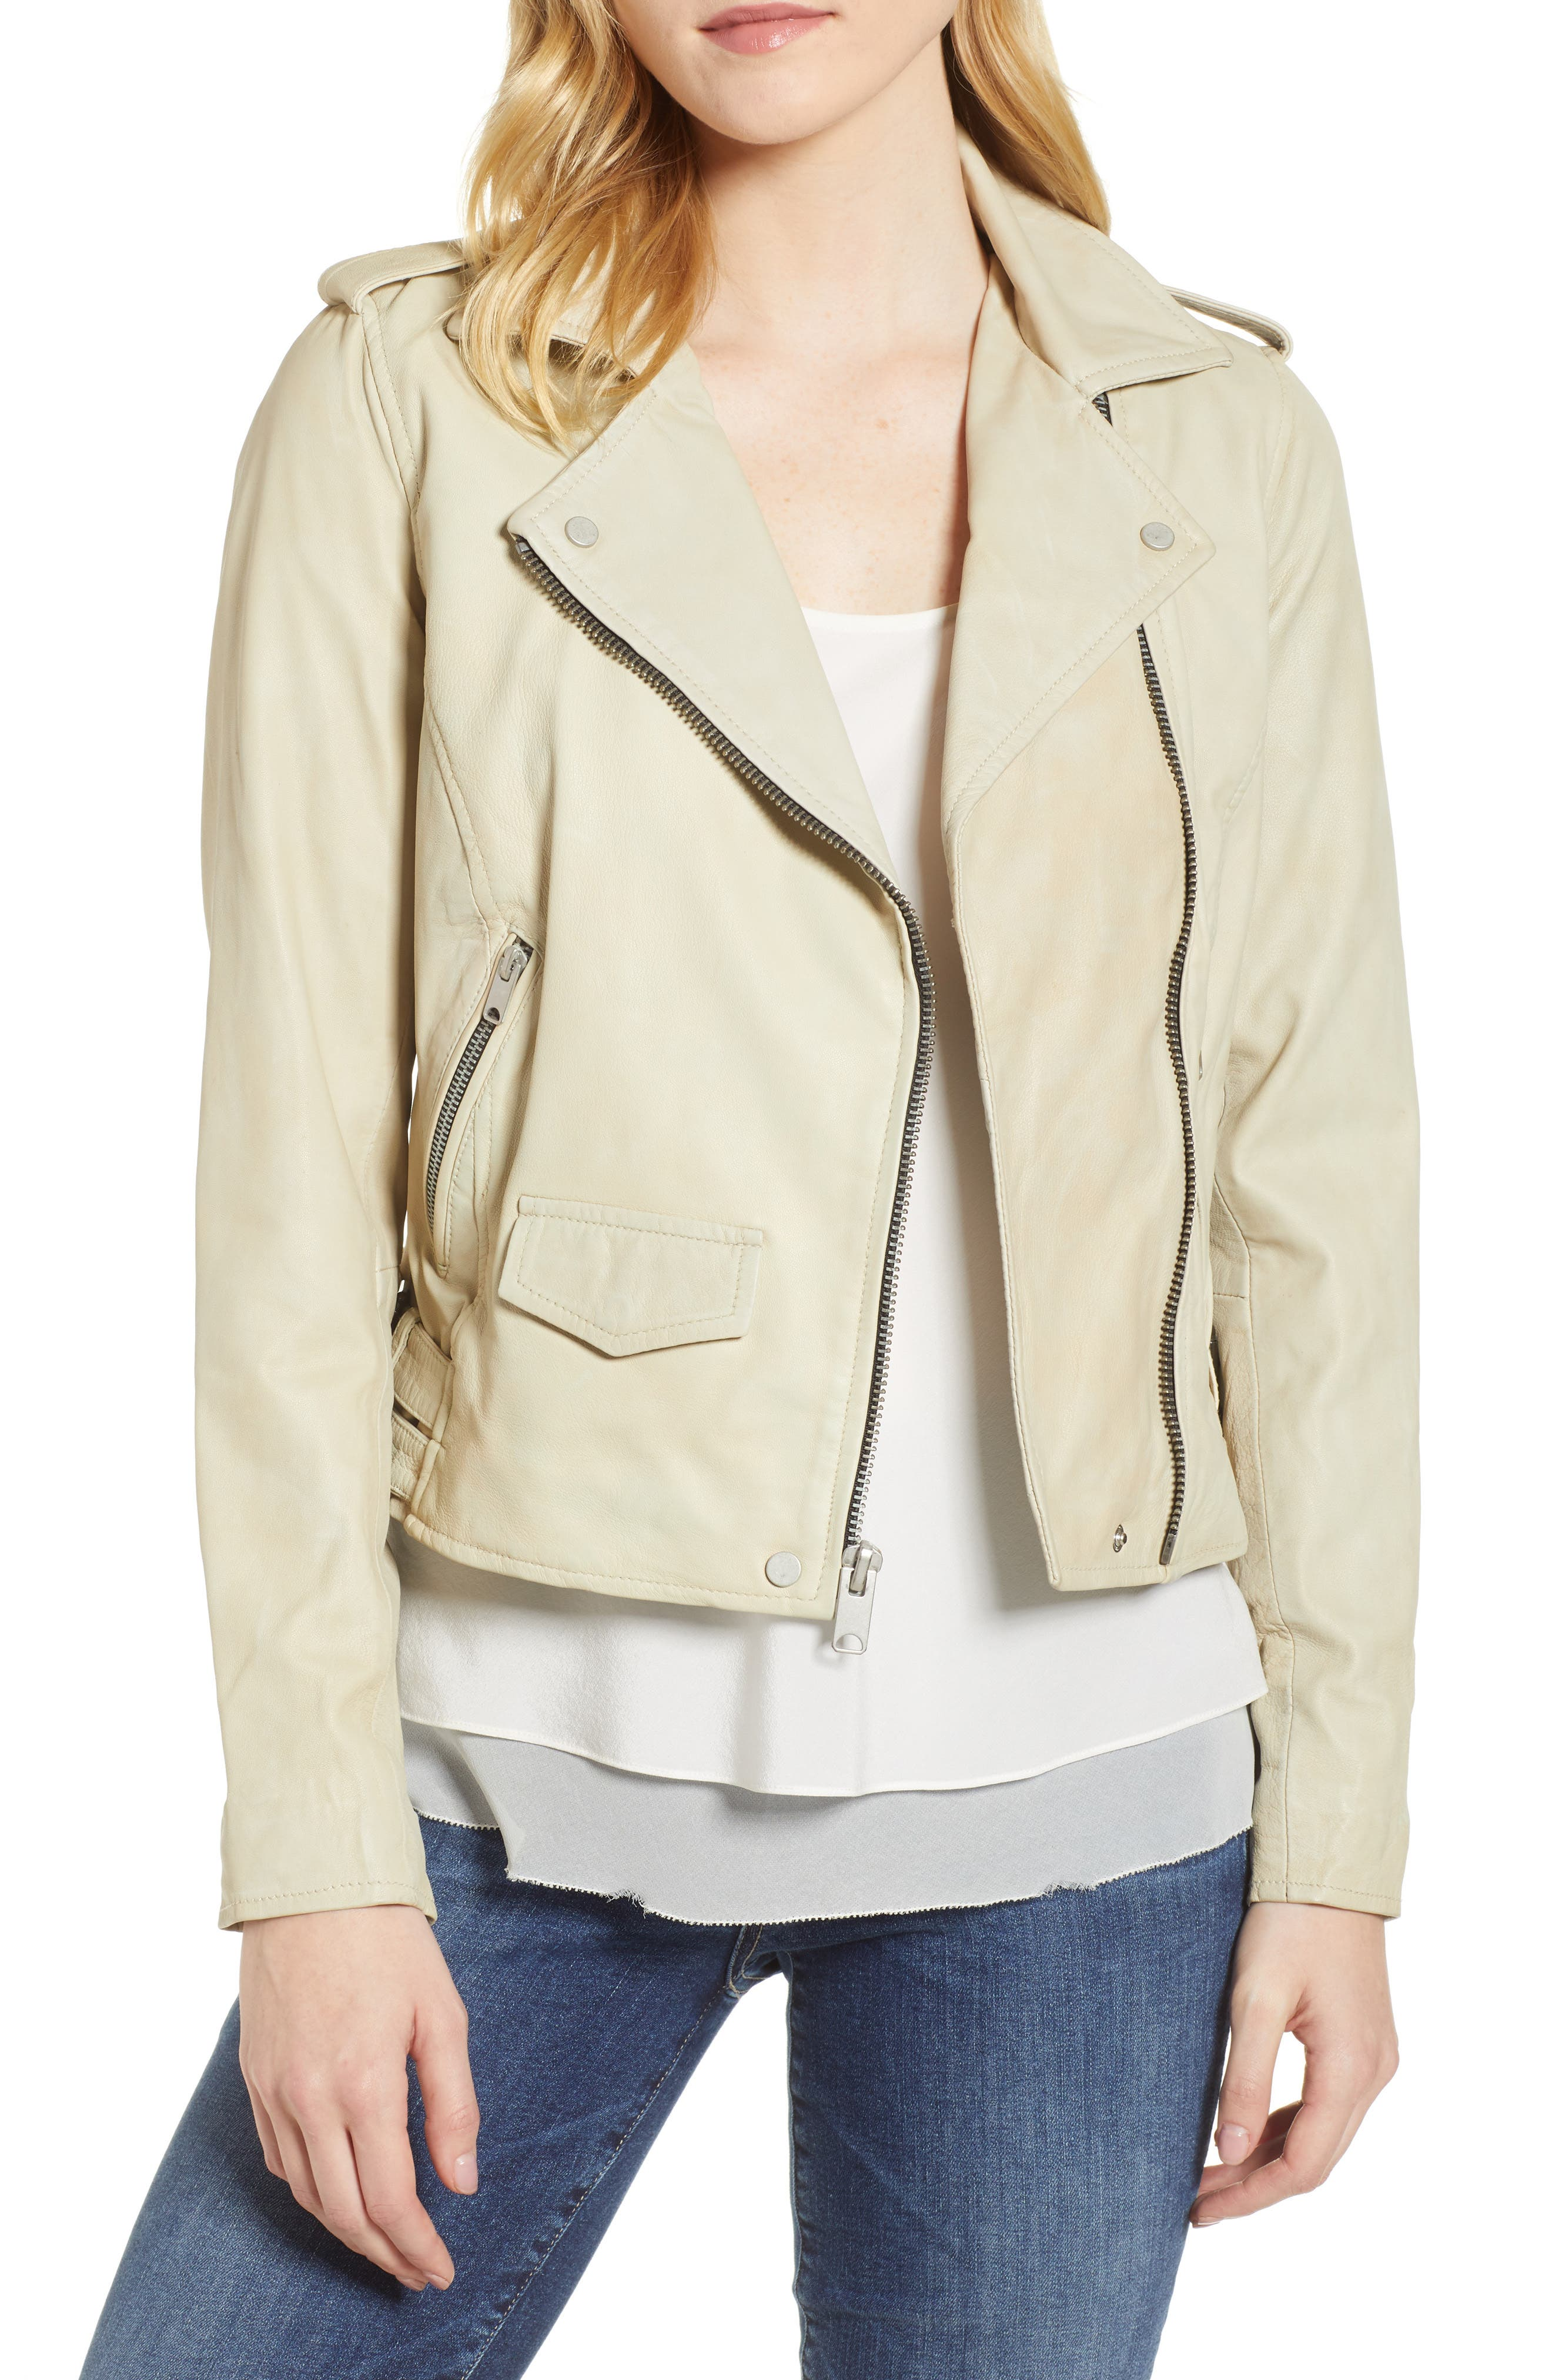 Whitney Washed Leather Crop Jacket,                             Main thumbnail 1, color,                             277